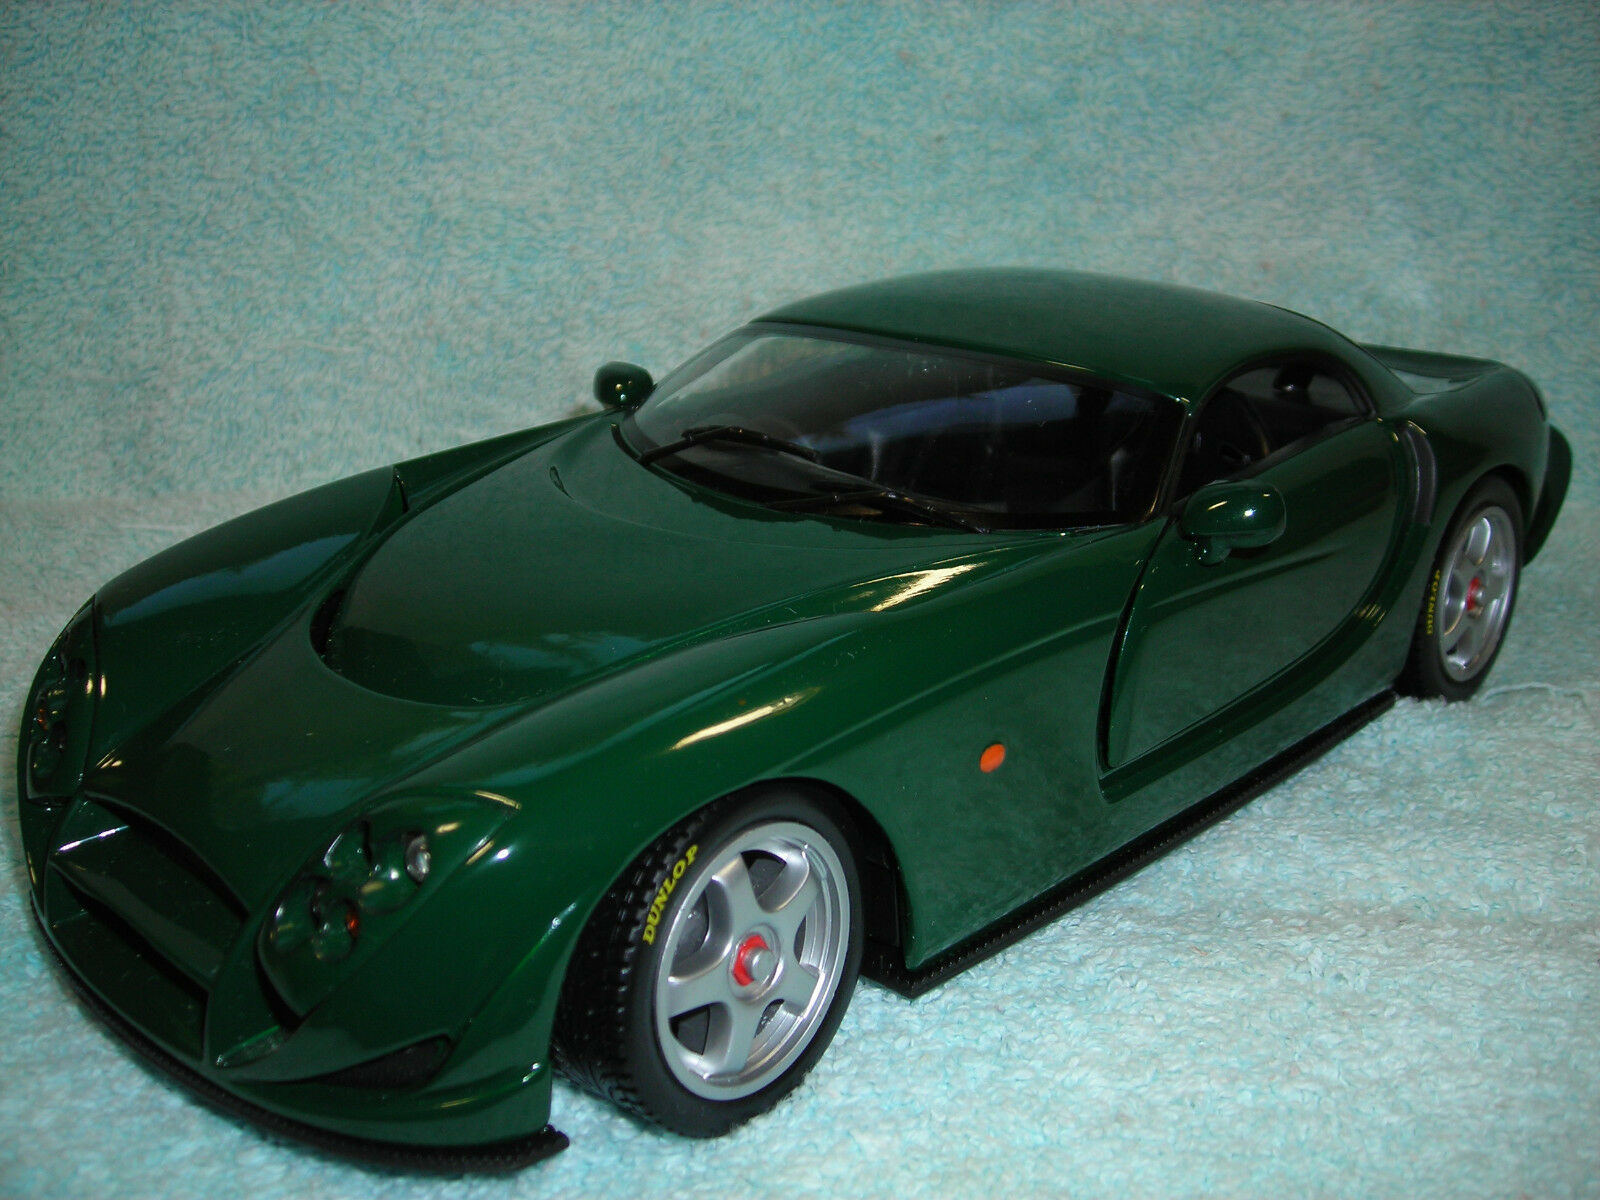 1 18 SCALE DIECAST 2003 TVR SPEED 12 IN HUNTER GREEN BY 100% HOT WHEELS.